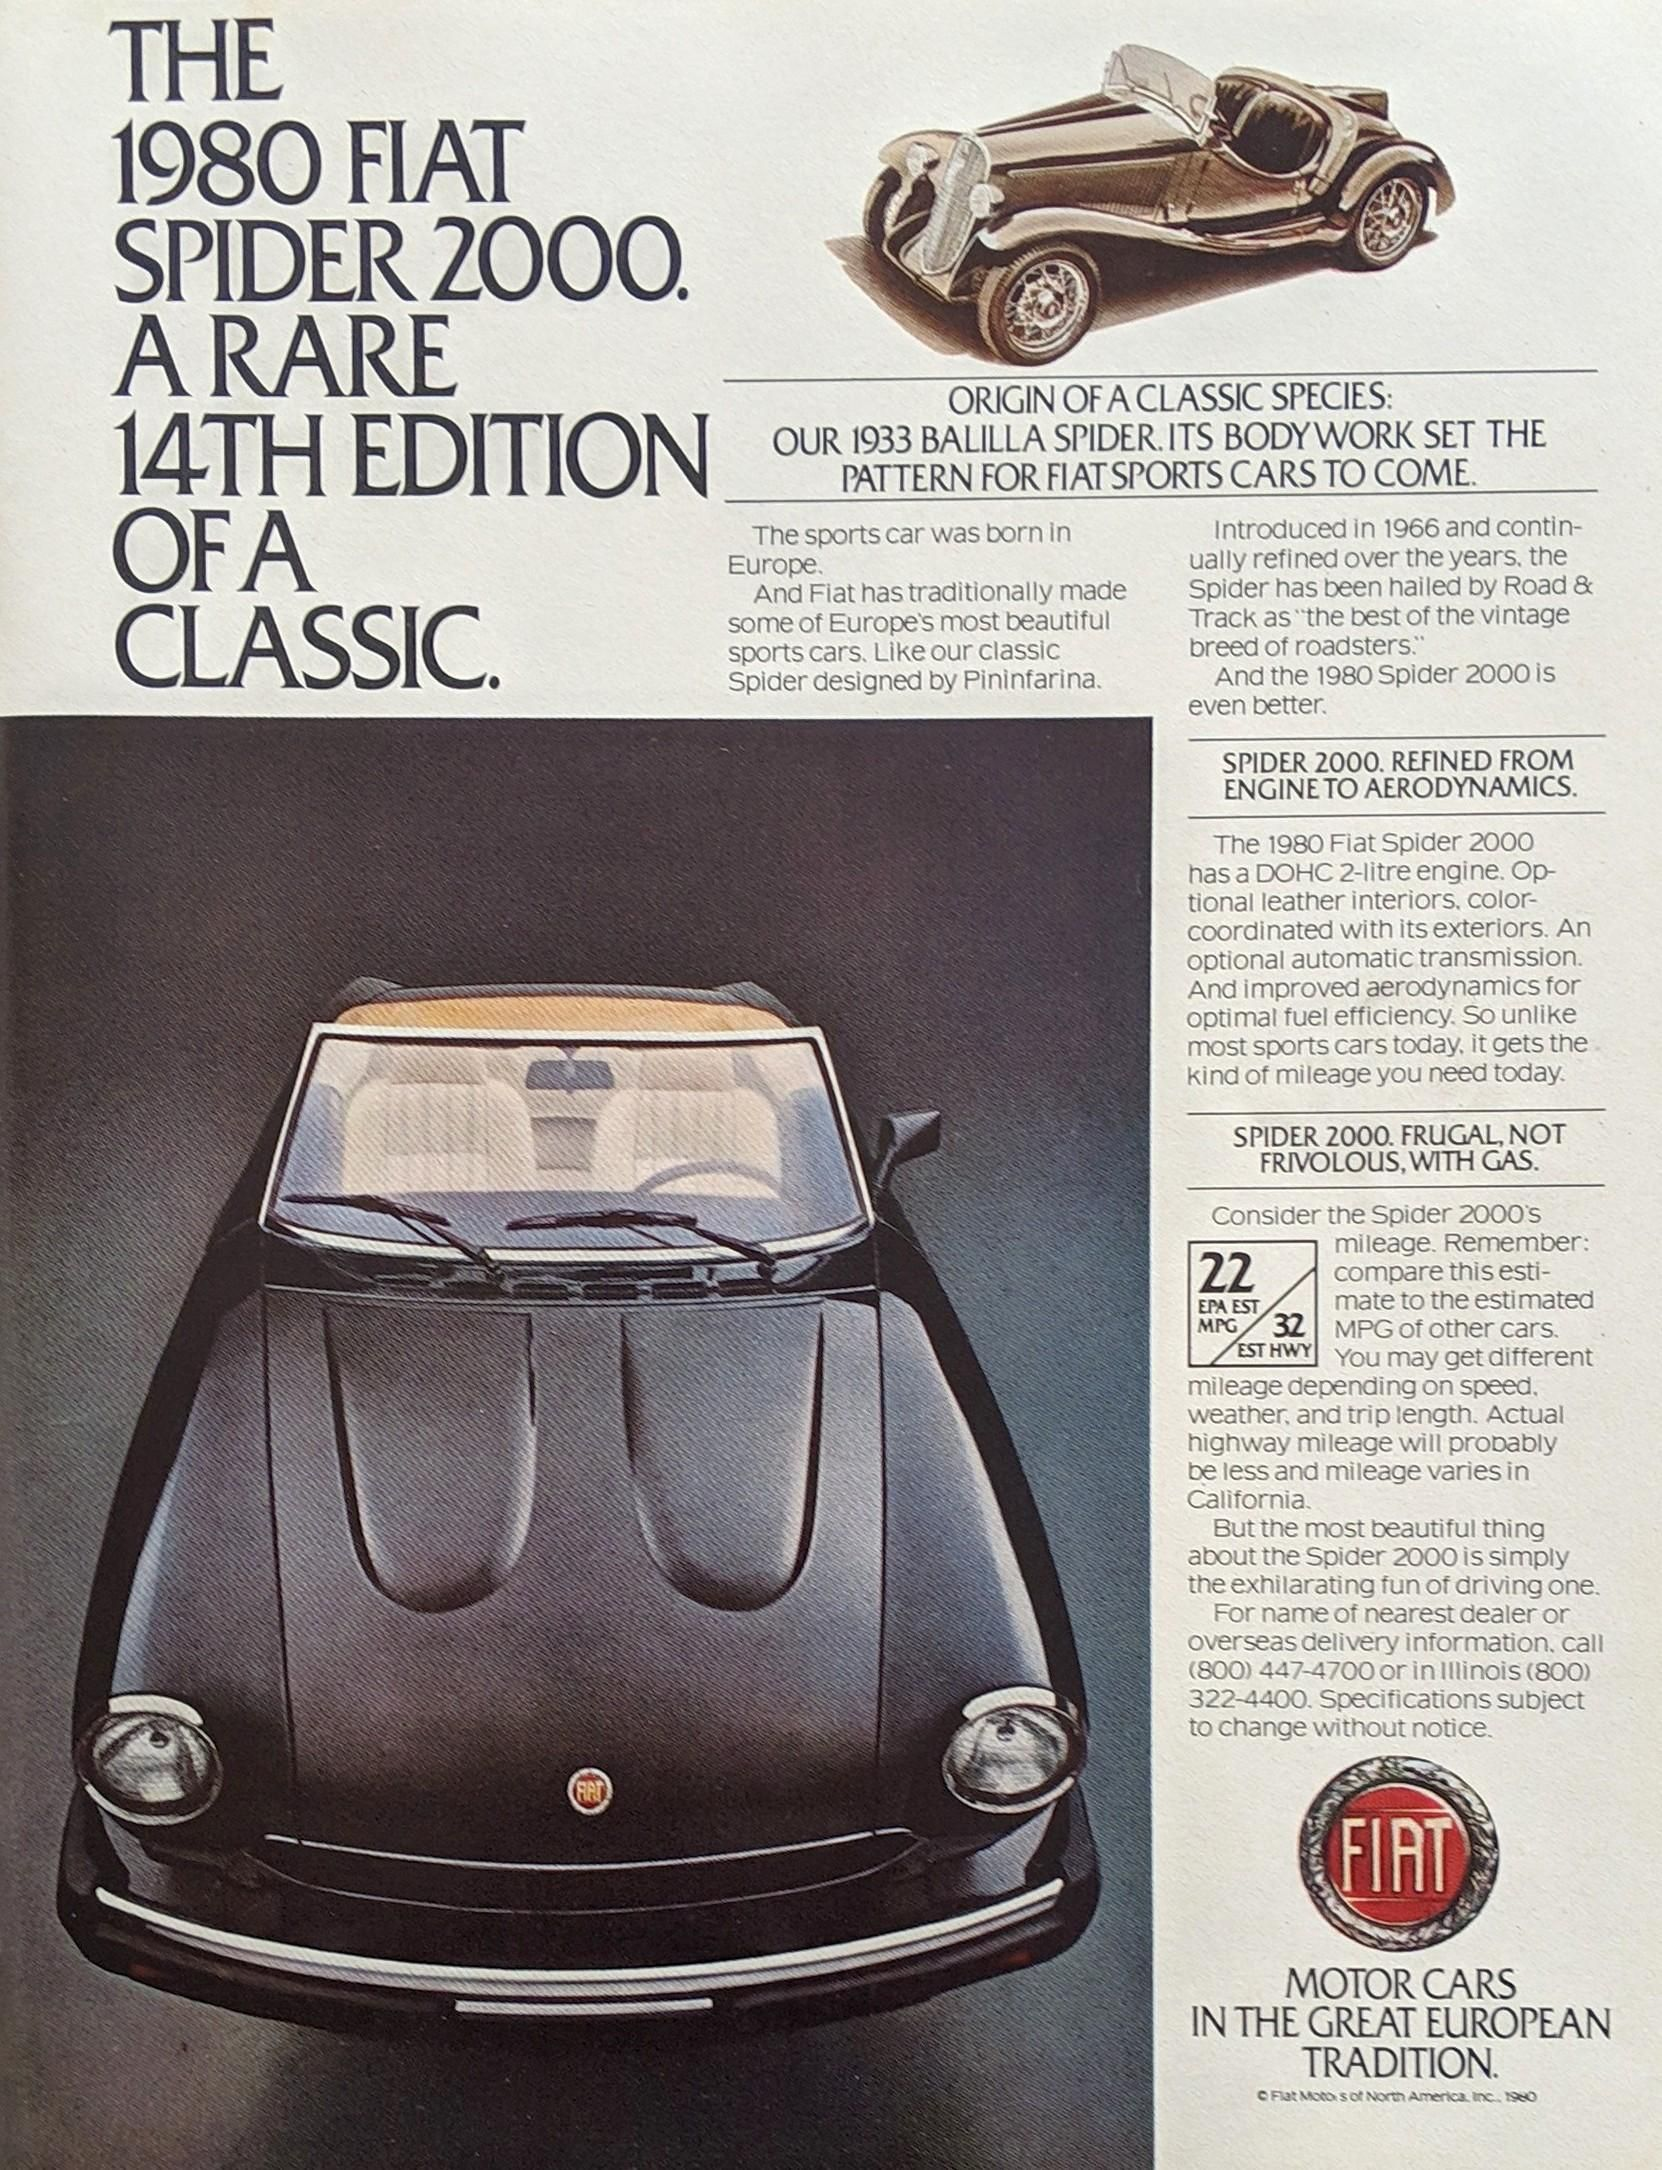 The 1980 Fiat Spider 2000 1980 Vintageads Ads Vintage